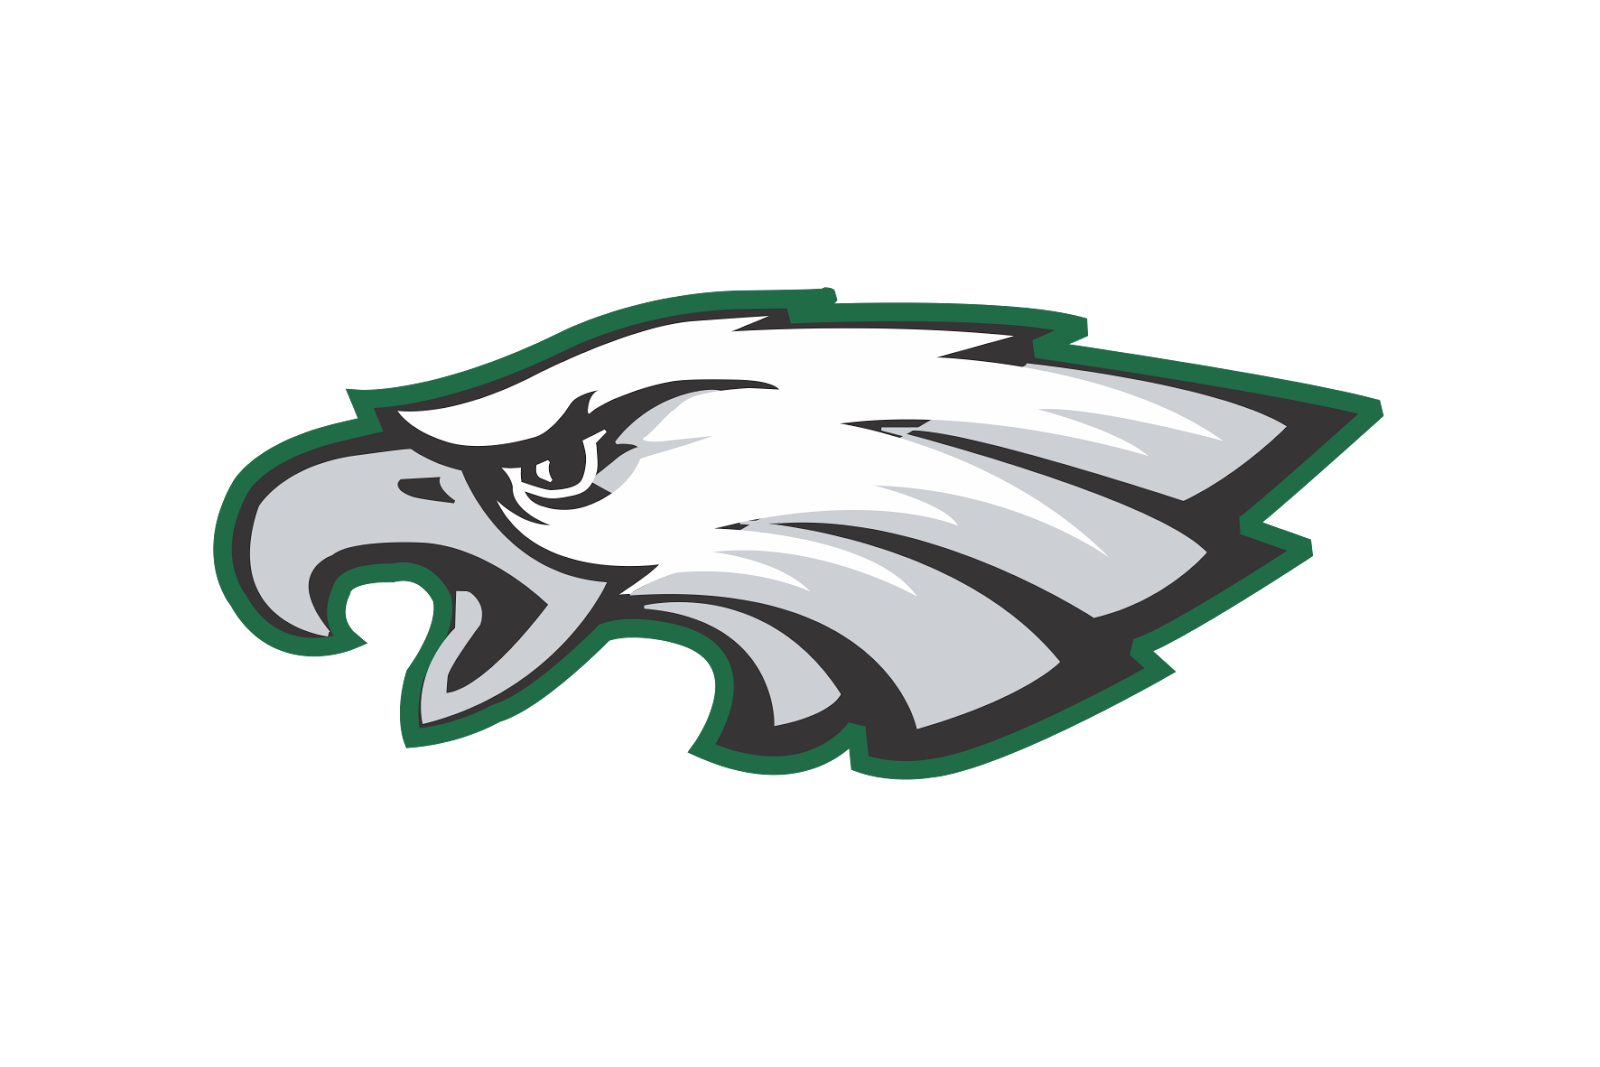 Eagle logo nfl - photo#16